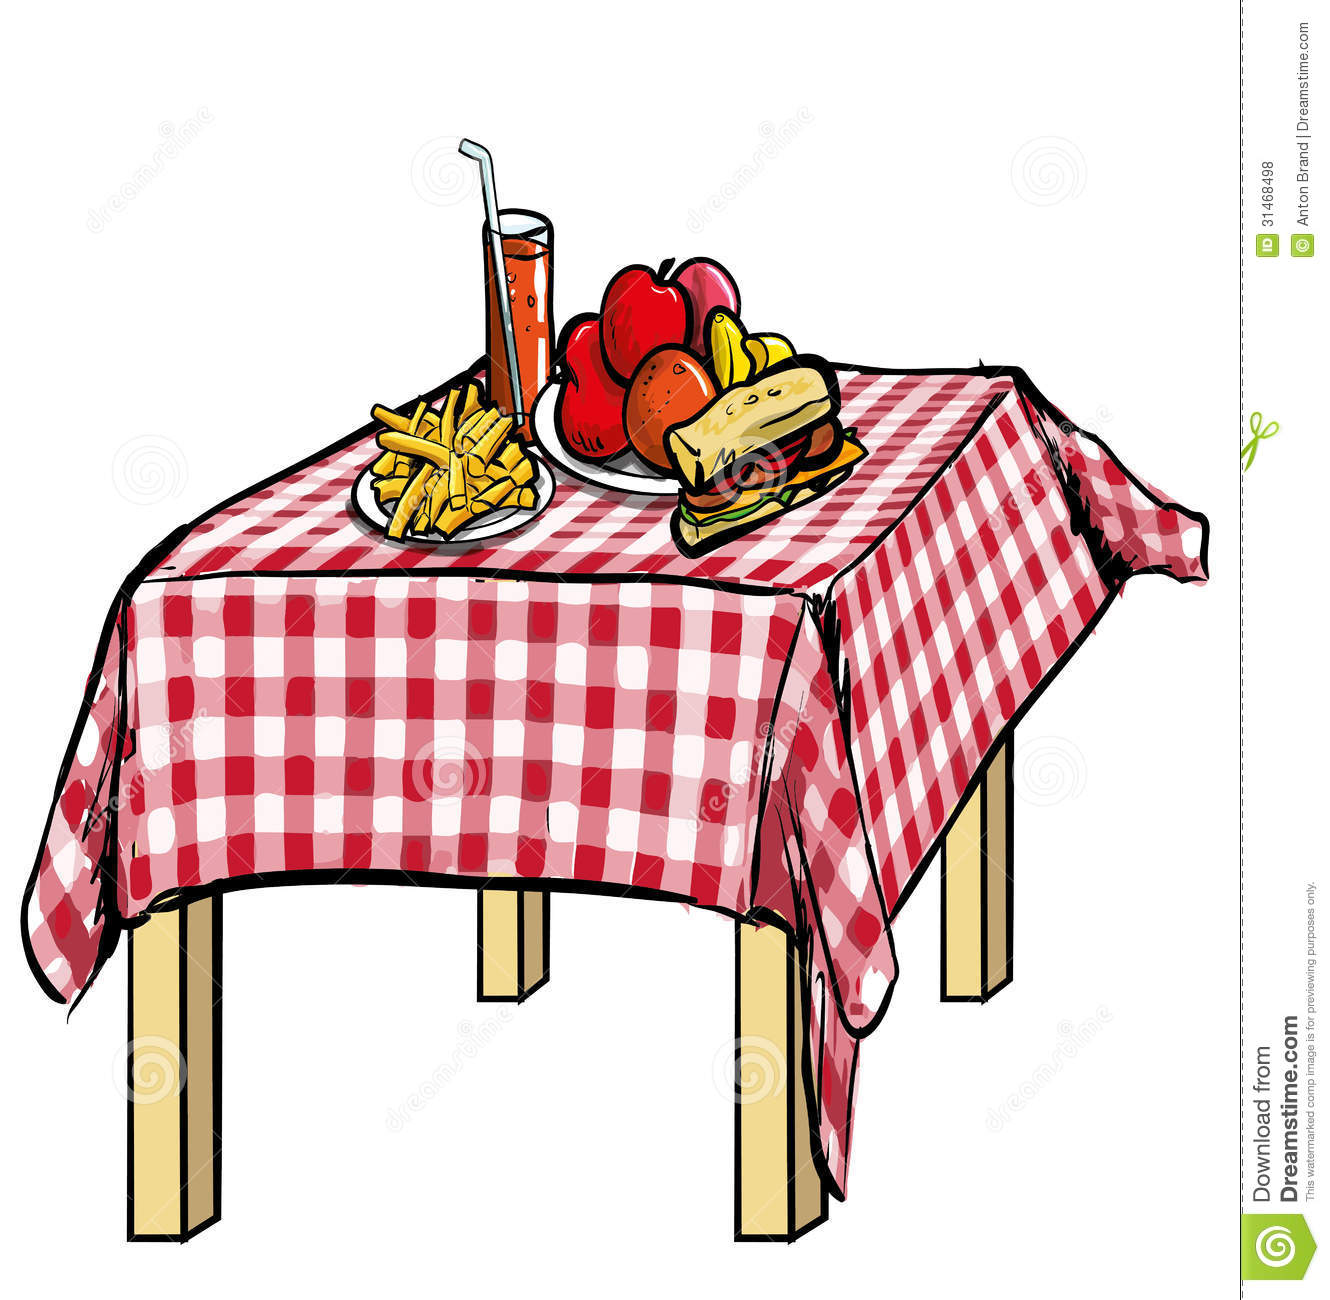 Cartoon kitchen table - Illustration Picnic Table Food Isolated White Jpg 1330x1300 Cartoon Table And Food